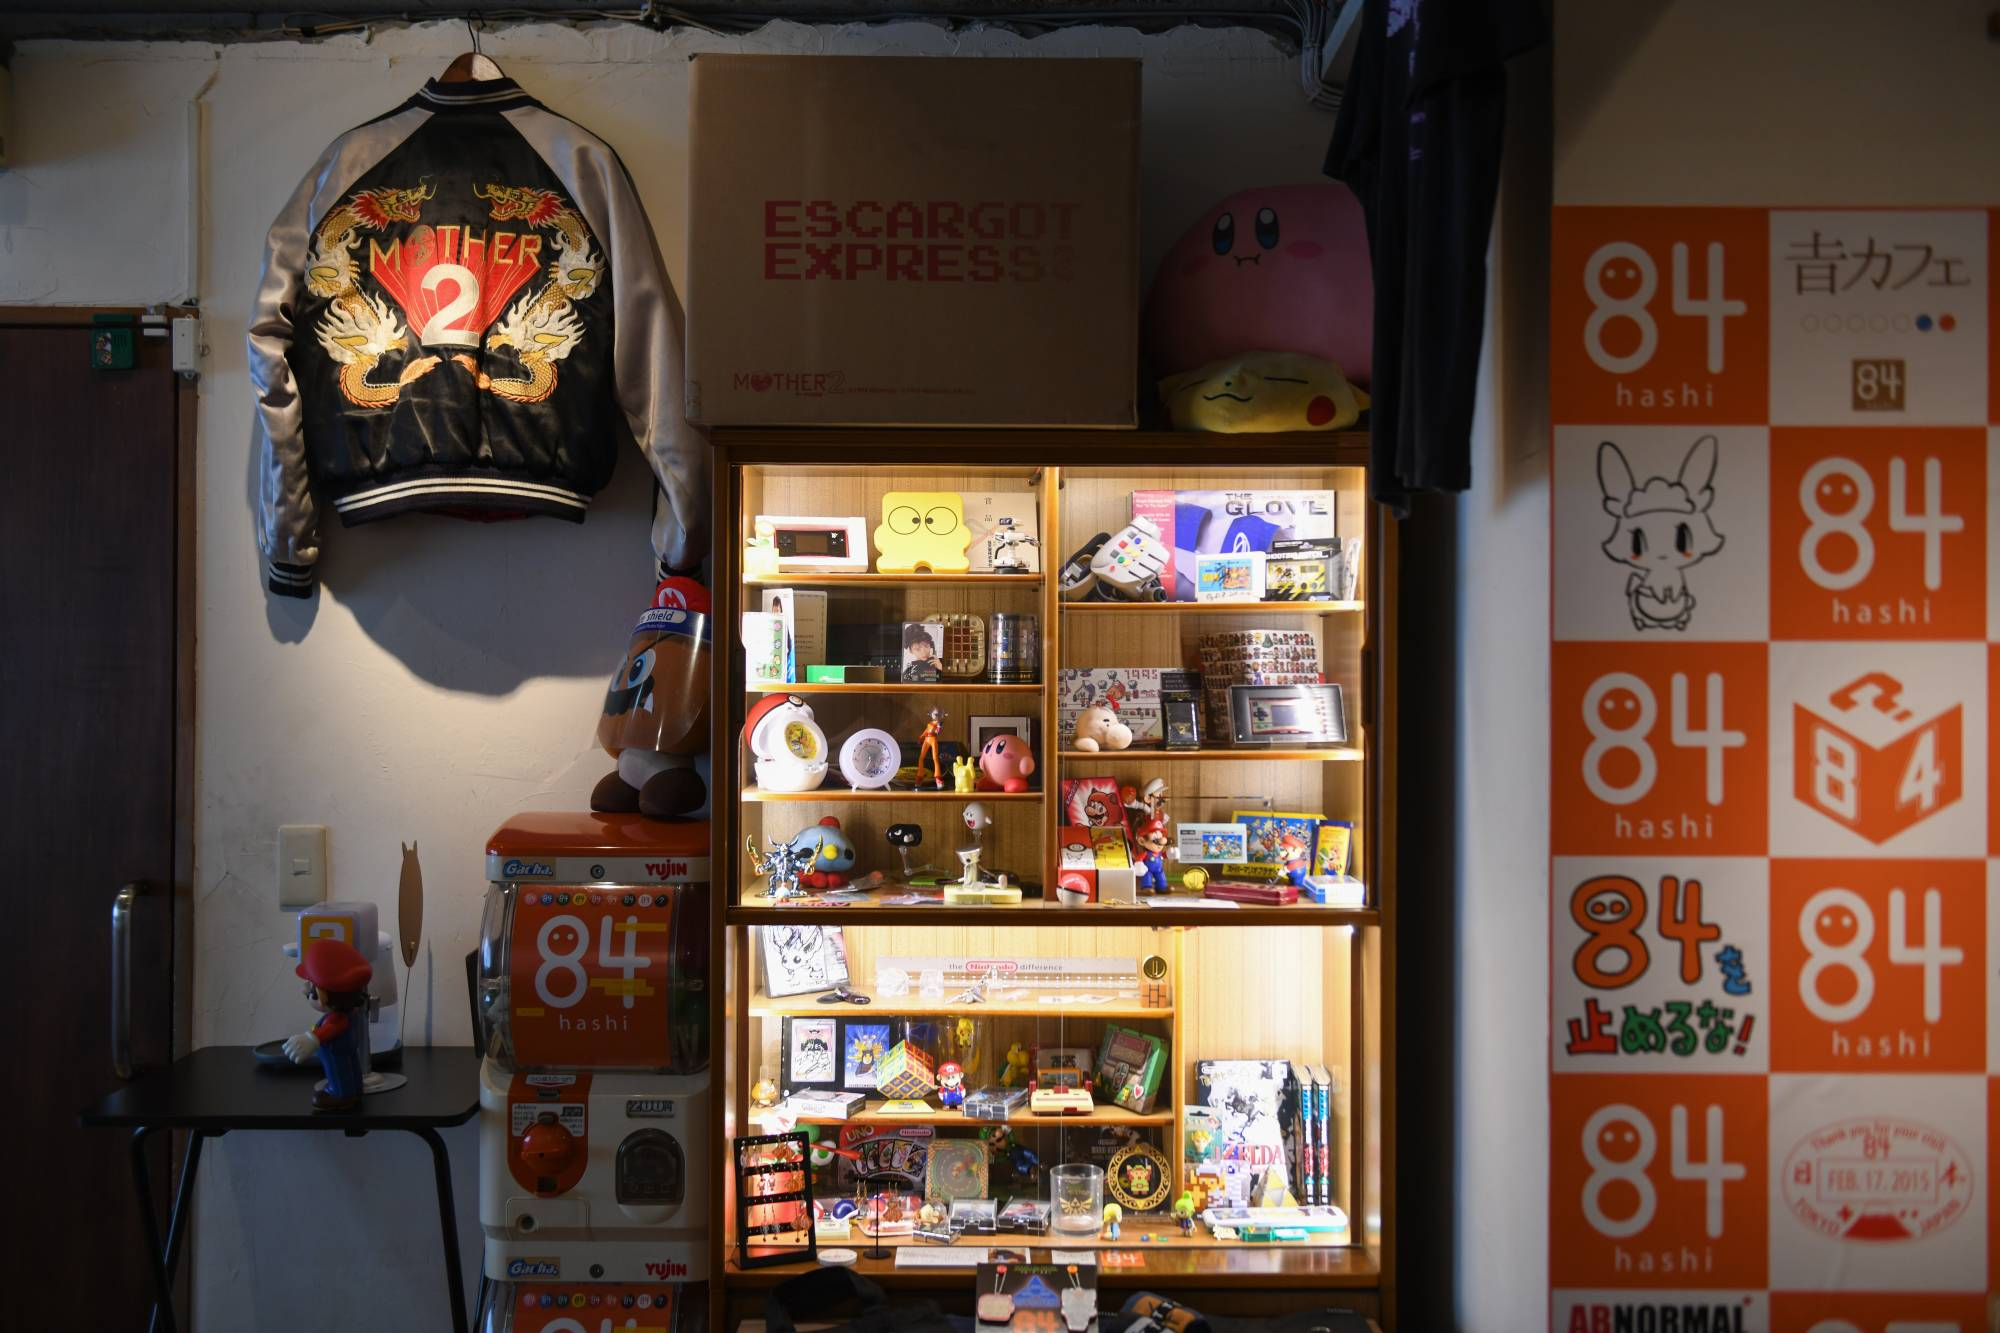 Tucked away at the back of a nondescript building in Tokyo's Shibuya district, 84 is the brainchild of former Nintendo Co. employee Toru Hashimoto. | BLOOMBERG